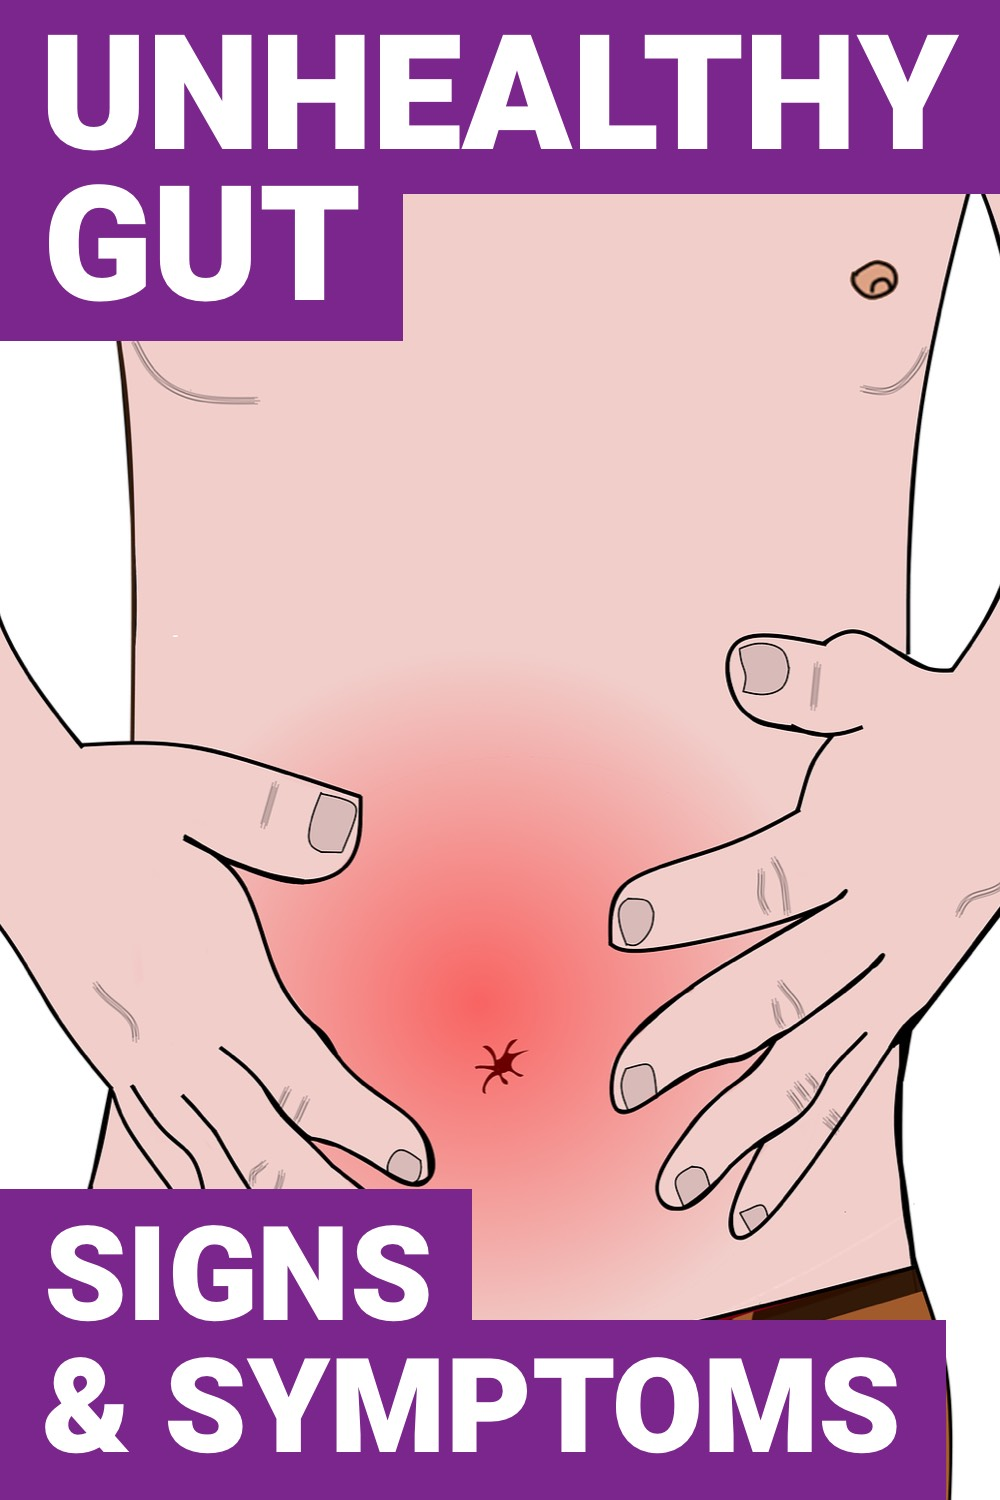 Having good gut health will help you live a longer life. Here are signs that you have an unhealthy gut and how to improve them.